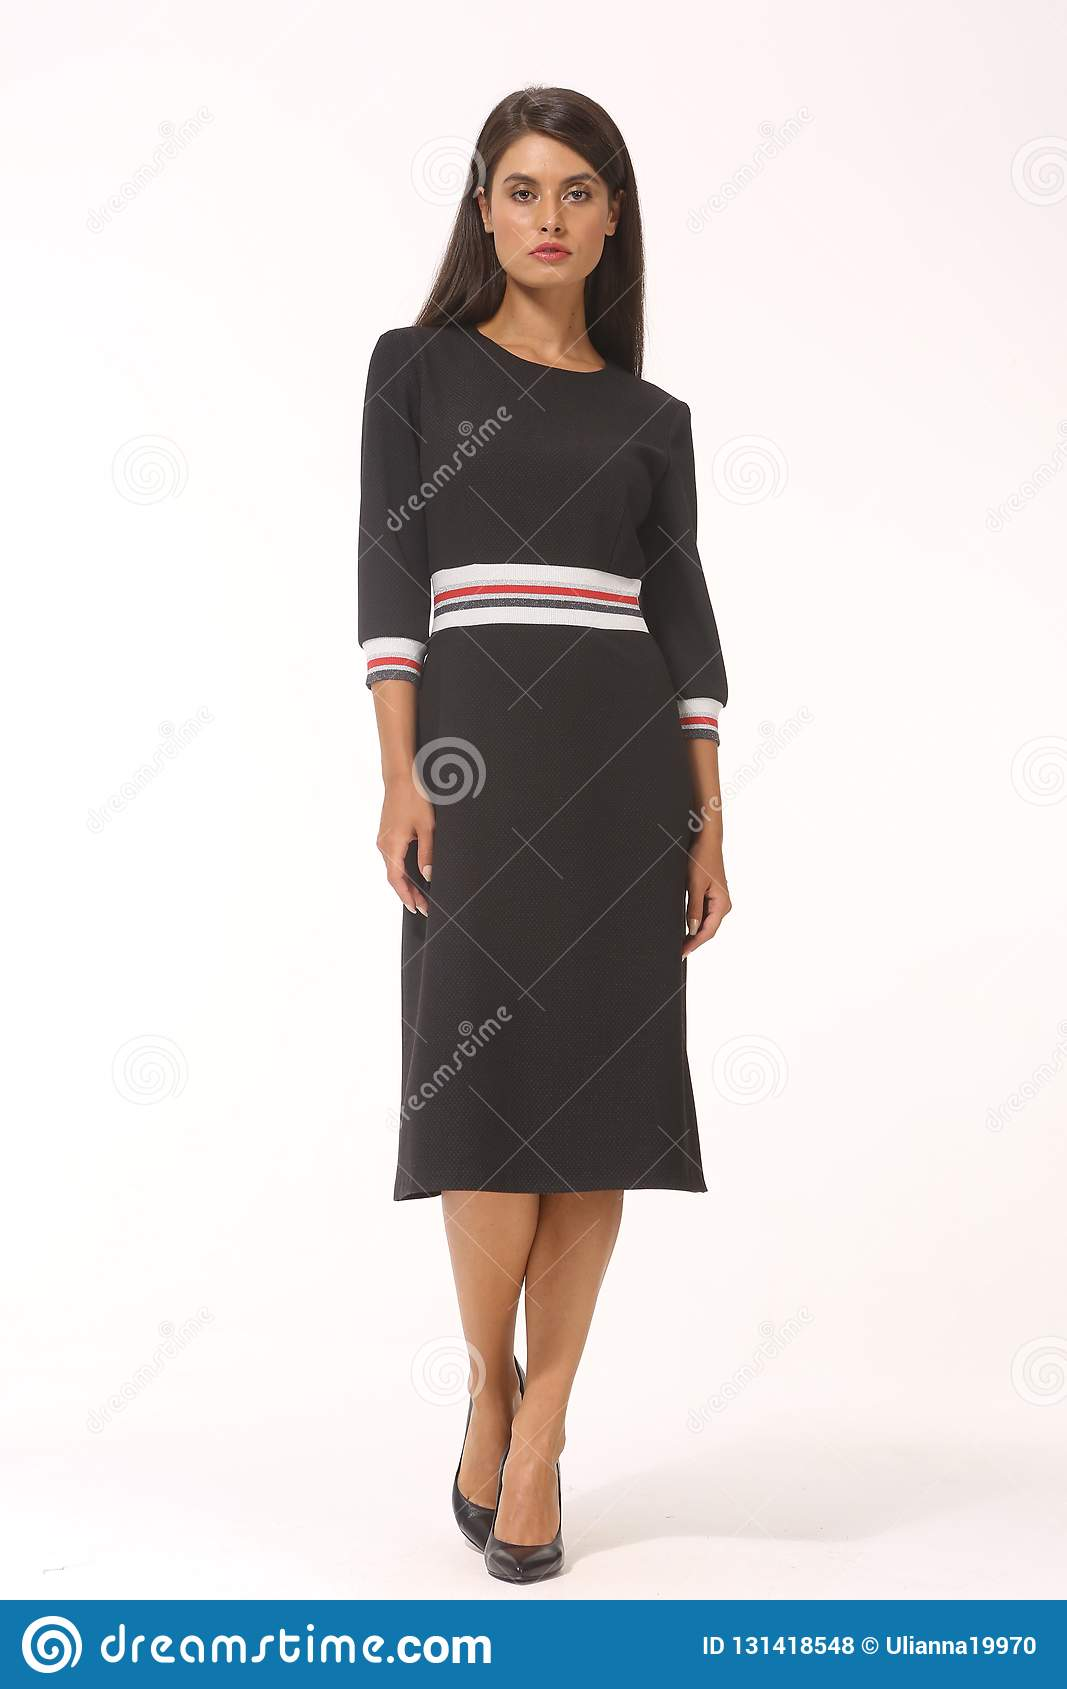 5637ec1f874 Woolen checked official dress for office fragment on model close up photo  isolated on white